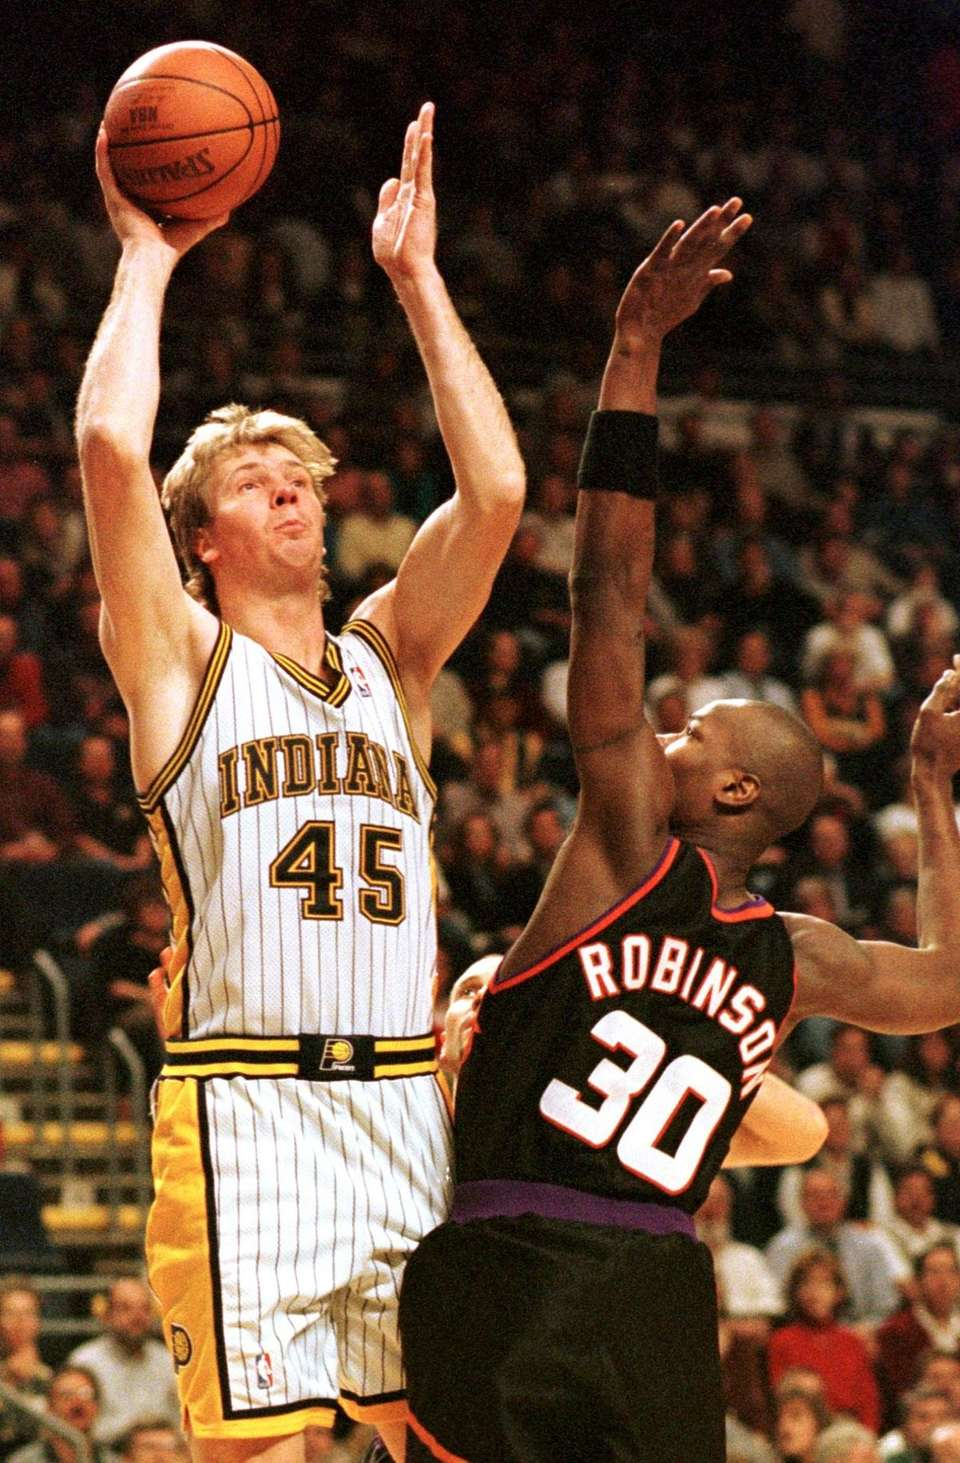 RIK SMITS, East Indiana Pacers The 1998 All-Star